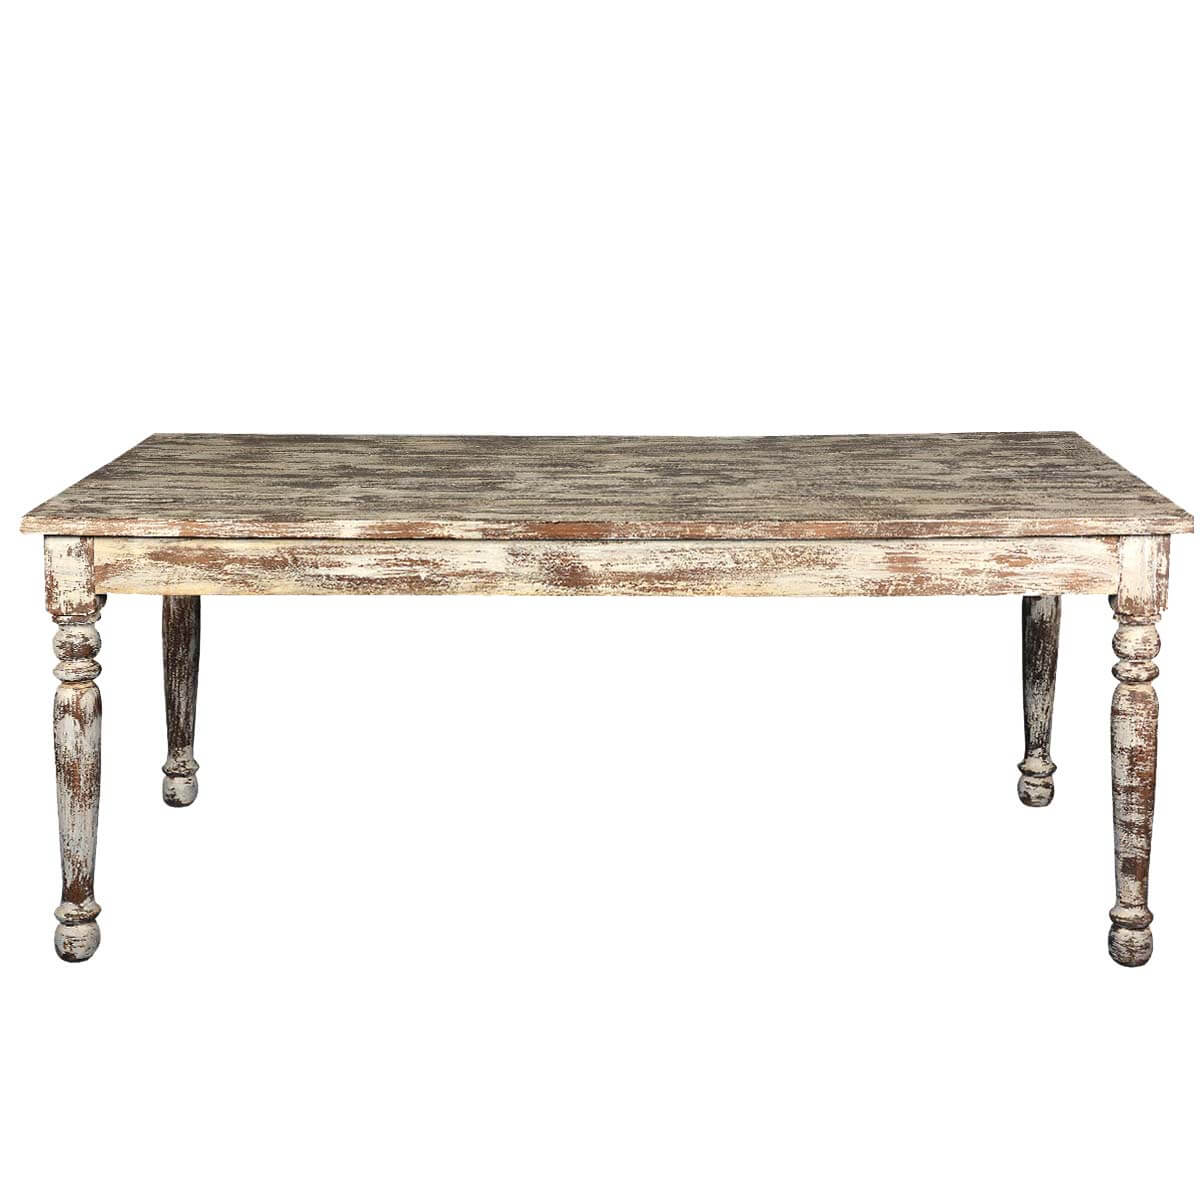 Distressed white finish mango wood farmhouse dining table for Farmhouse dining table